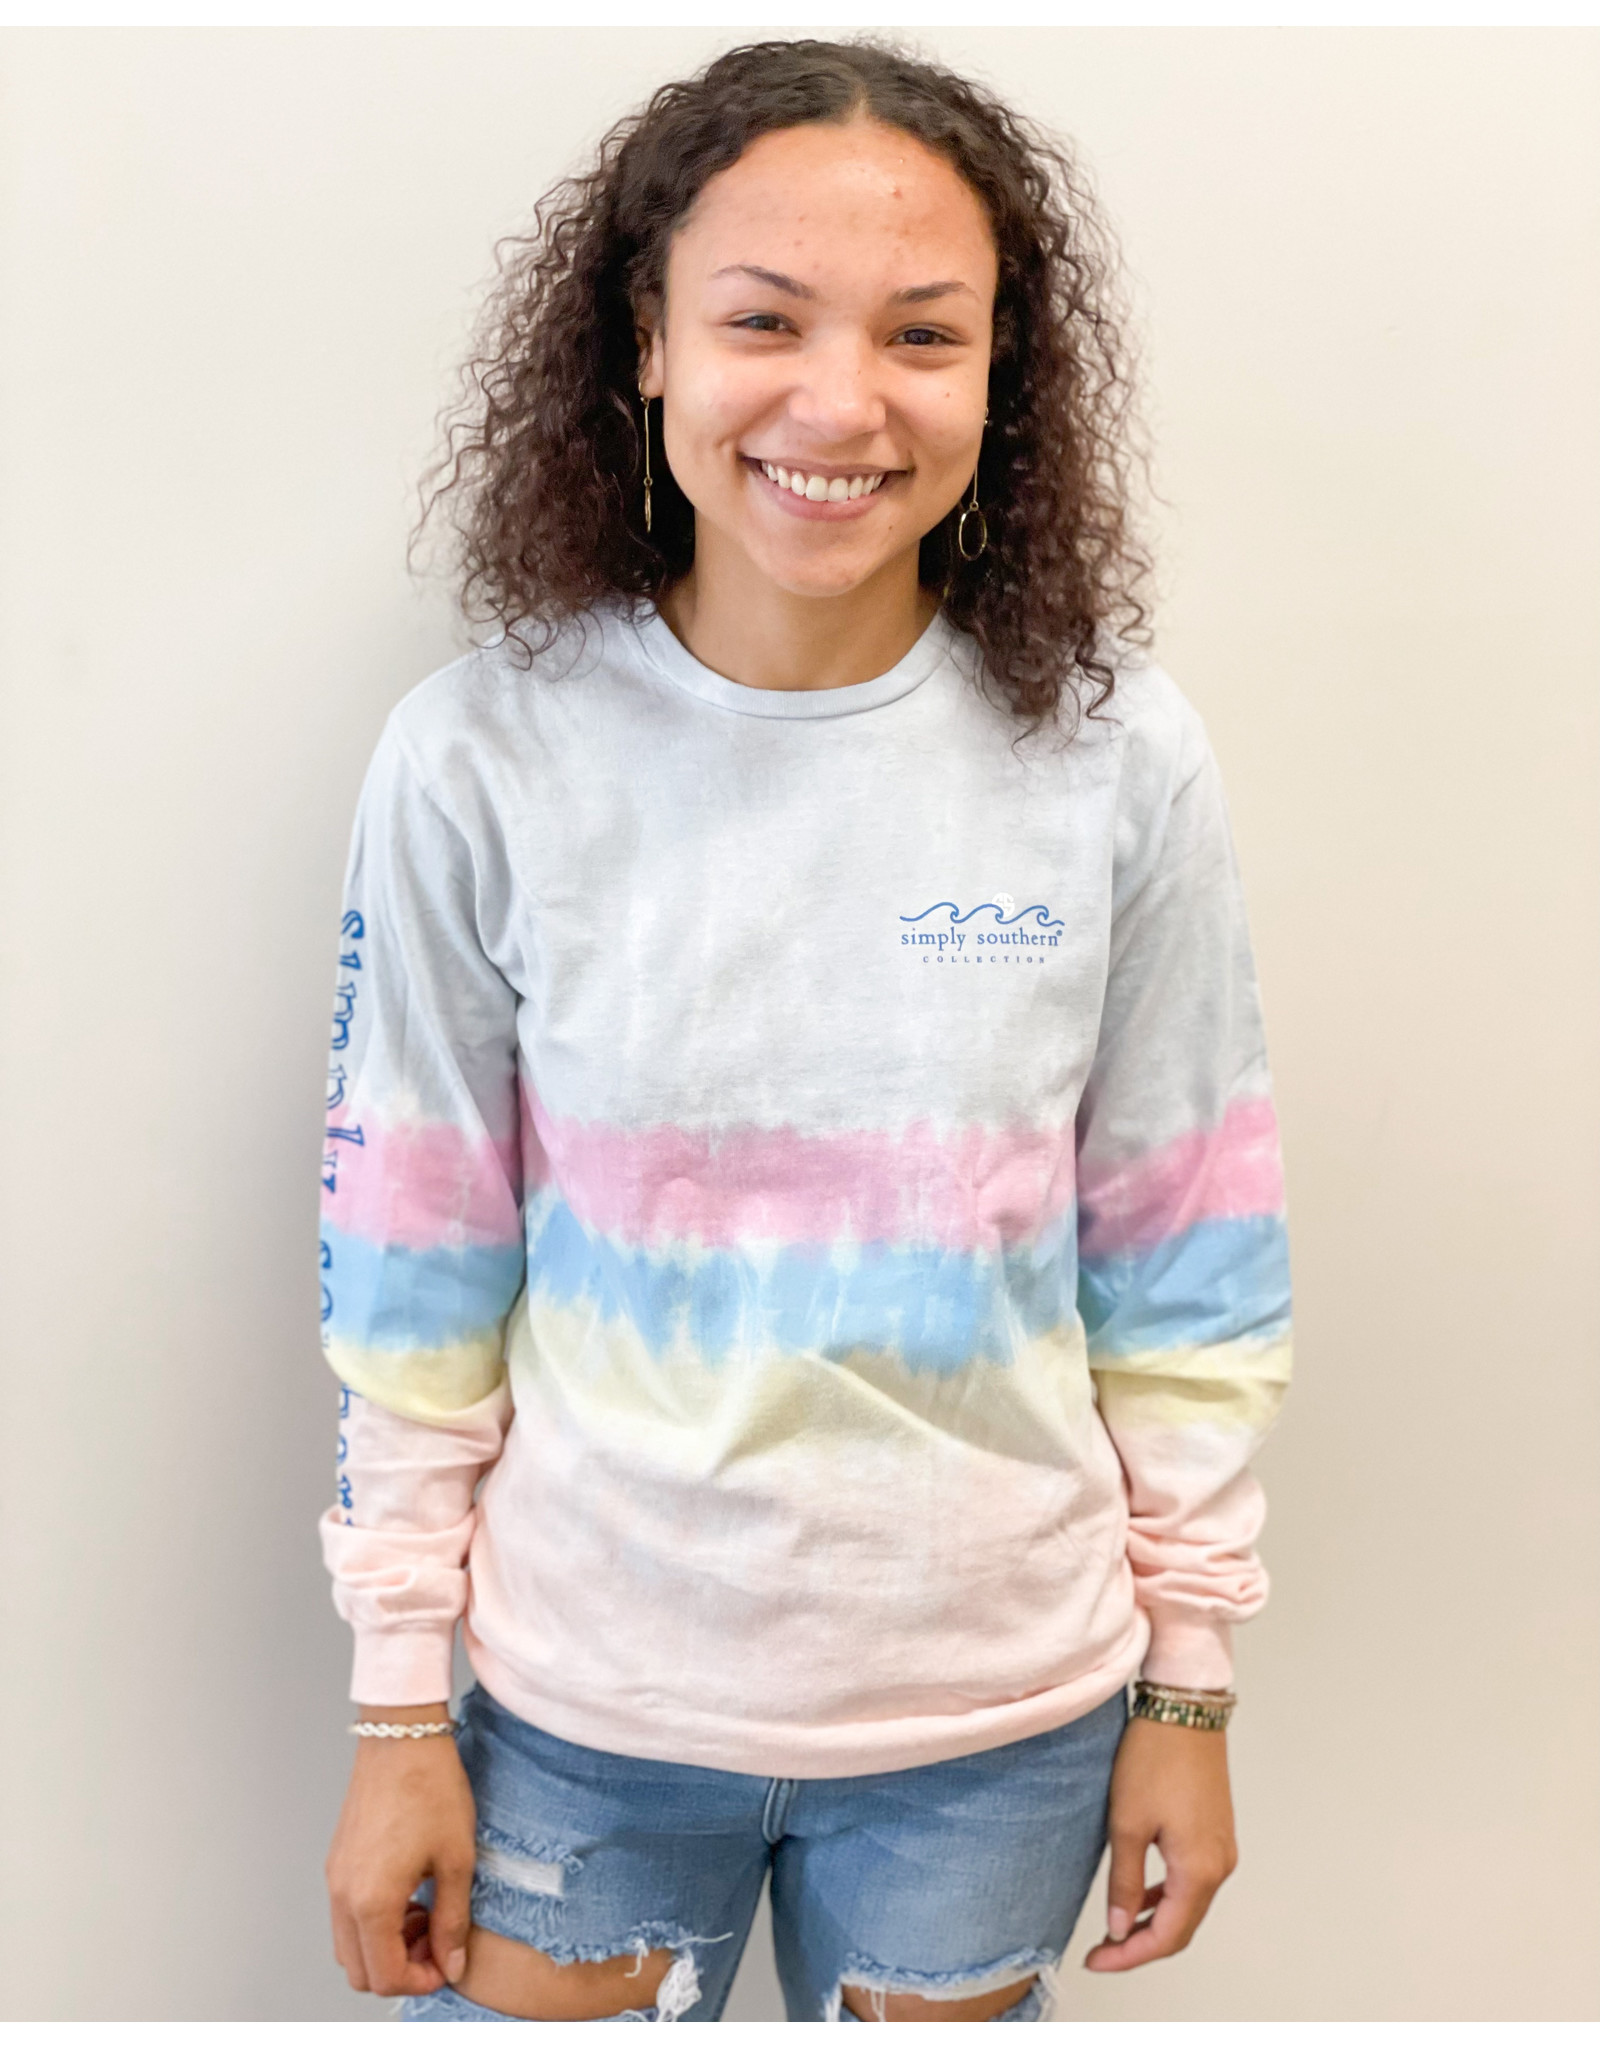 Simply Southern Tee Youth LS Mightier Confetti